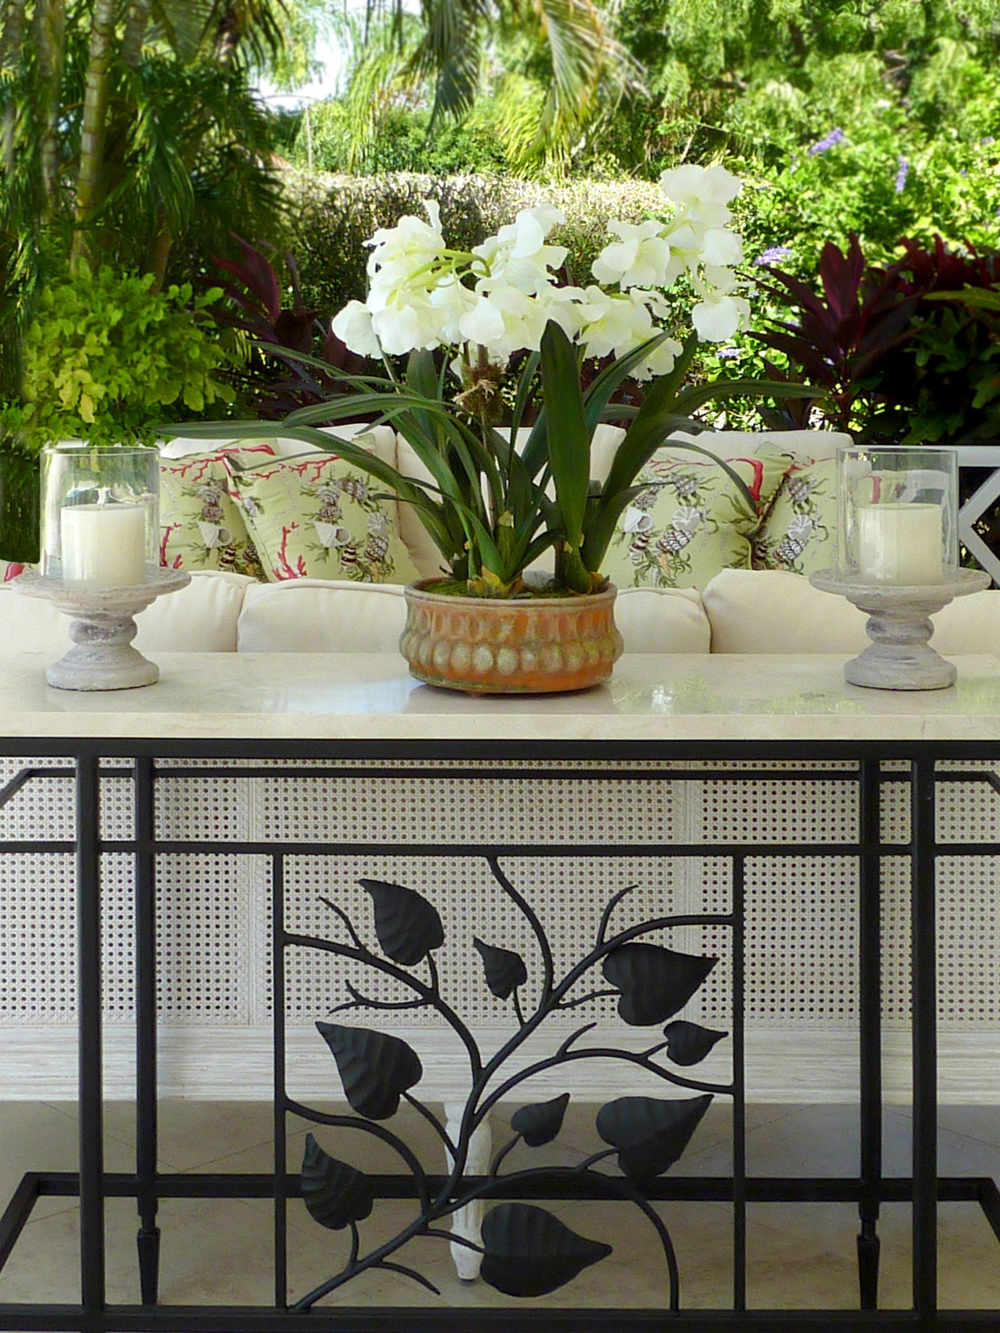 Jenny Blanc Blog - Orchid Arrangement on Wrought Iron Console